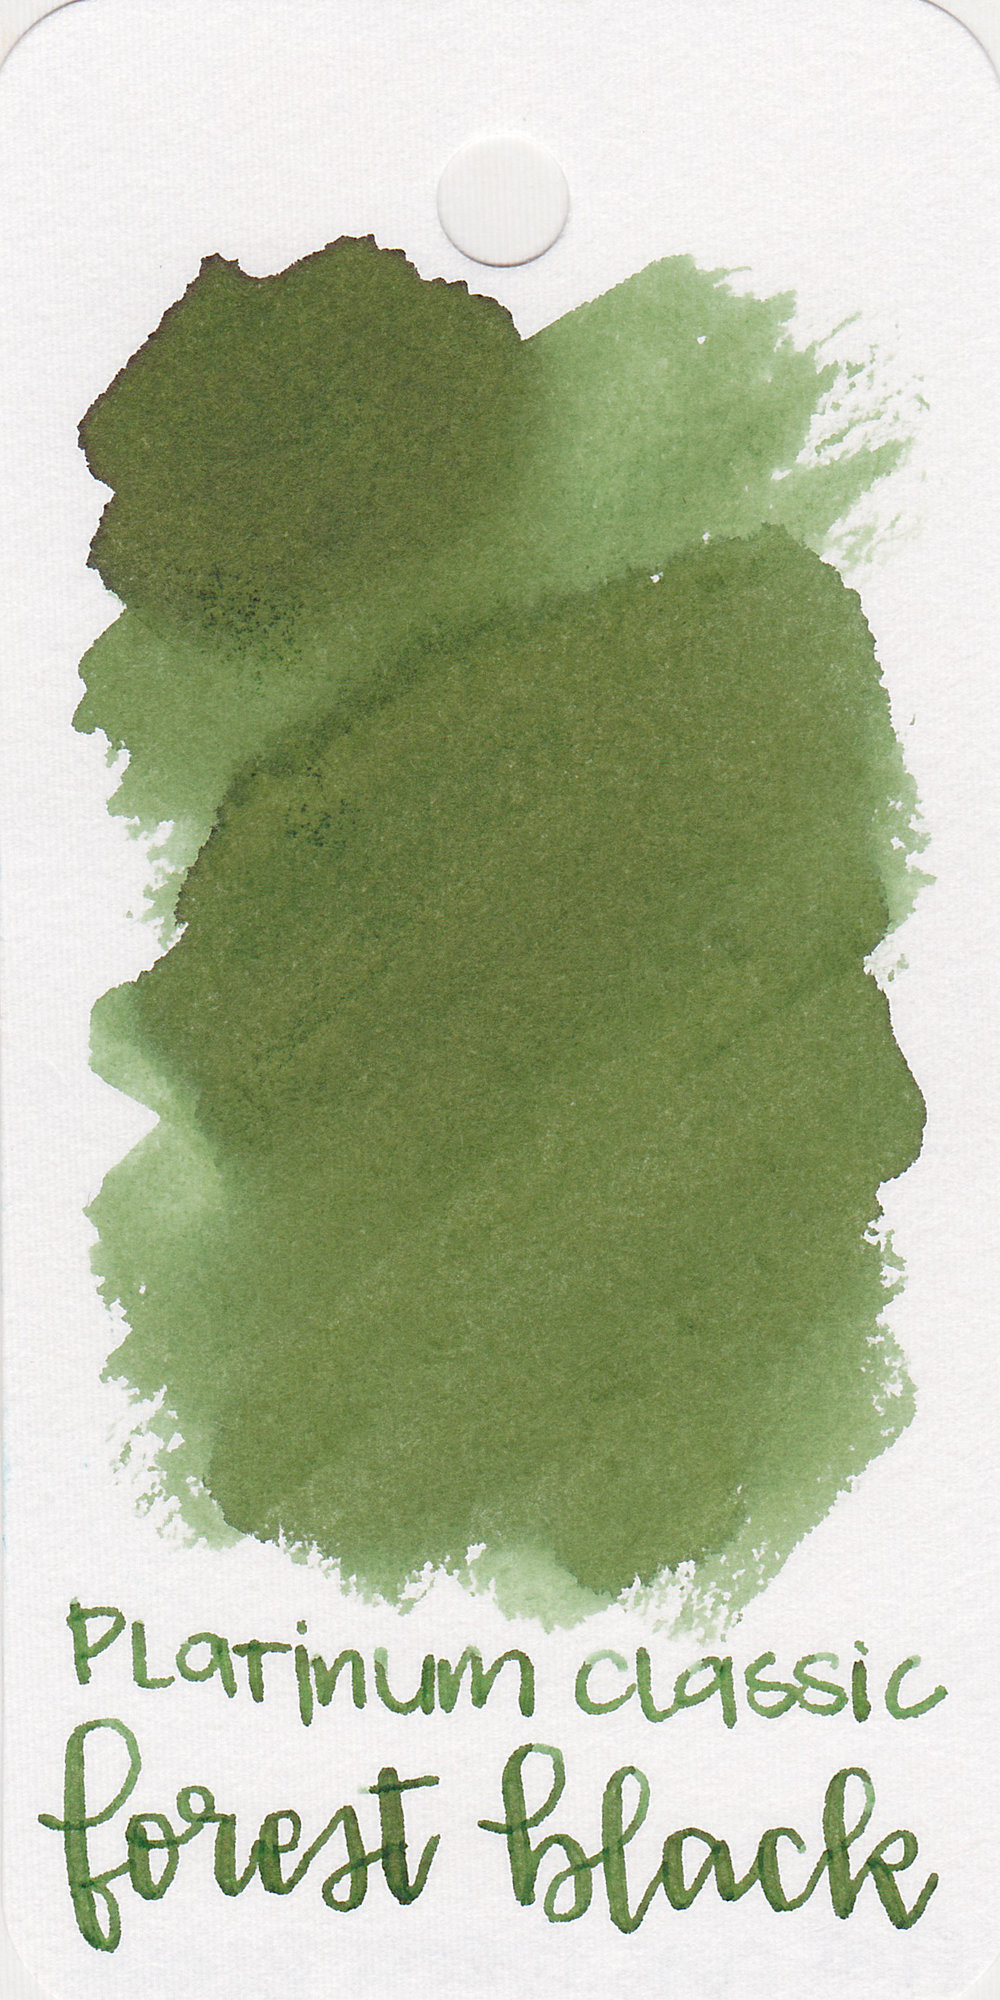 The color: - Forest Black is an unsaturated medium green.